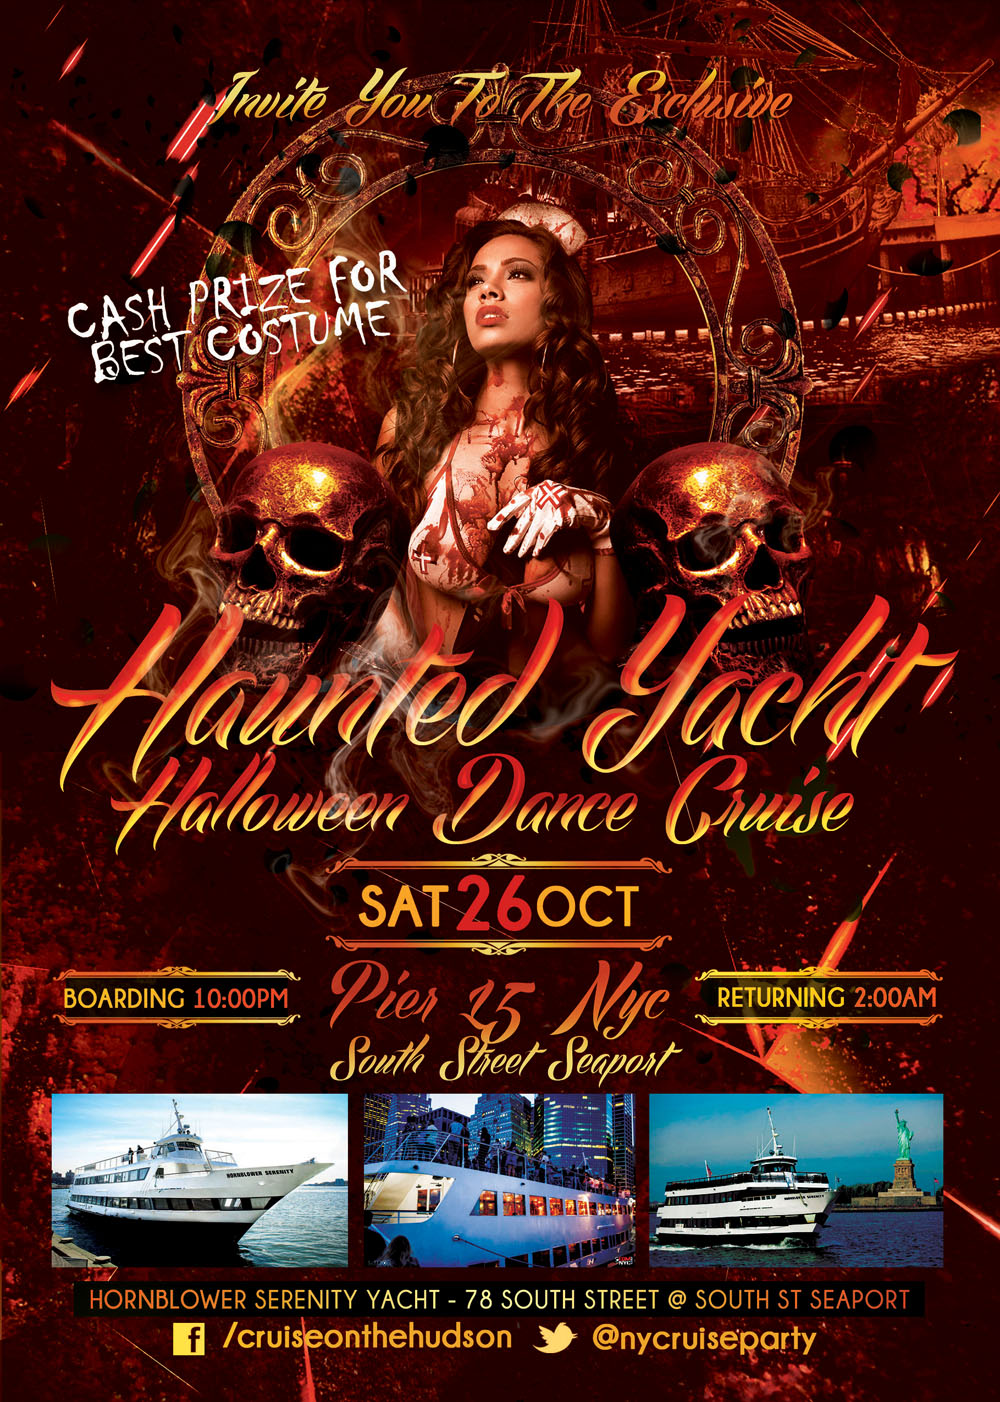 Haunted Yacht NYC Halloween Dance Cruise Pier 15 NYC South Street Seaport